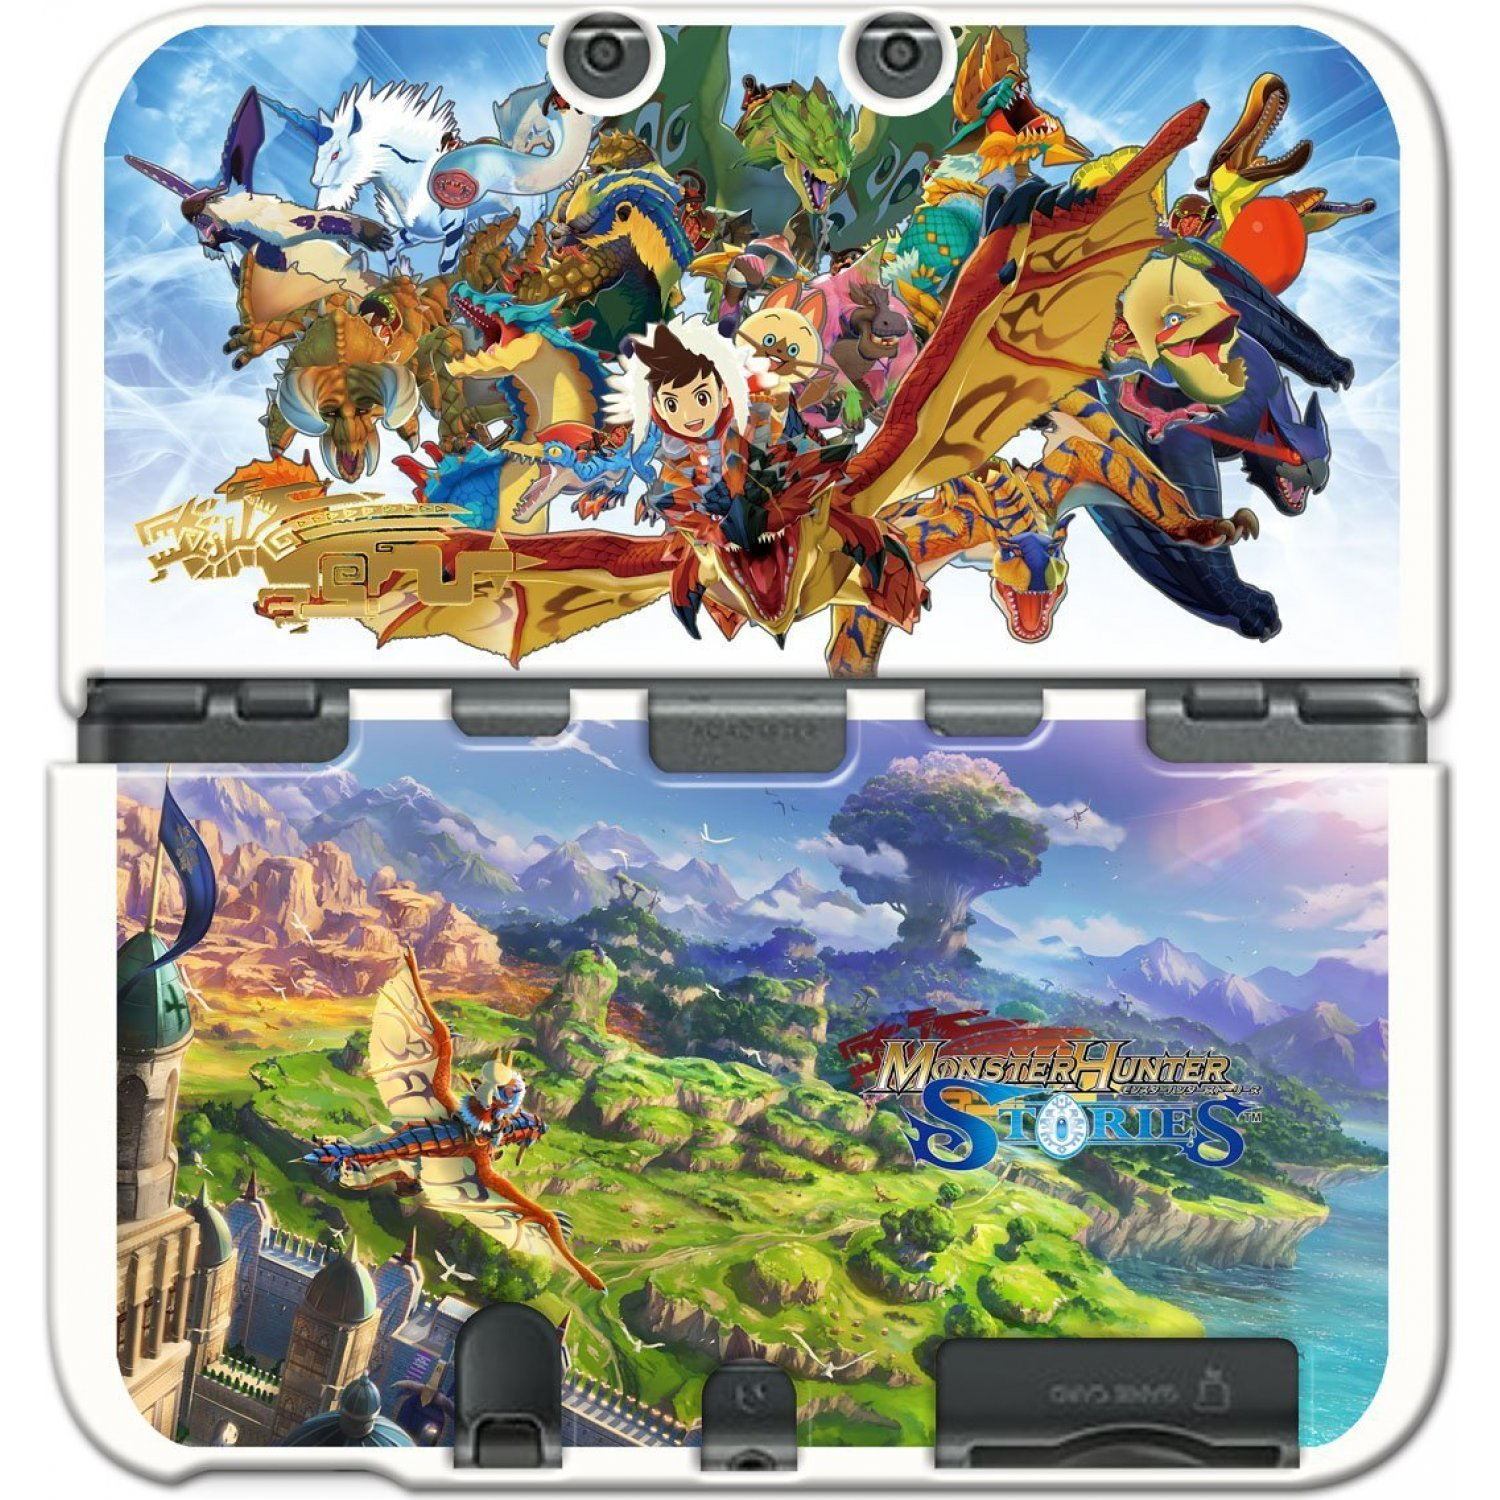 Toggle Switch Cover >> Monster Hunter Stories Cover for New 3DS LL